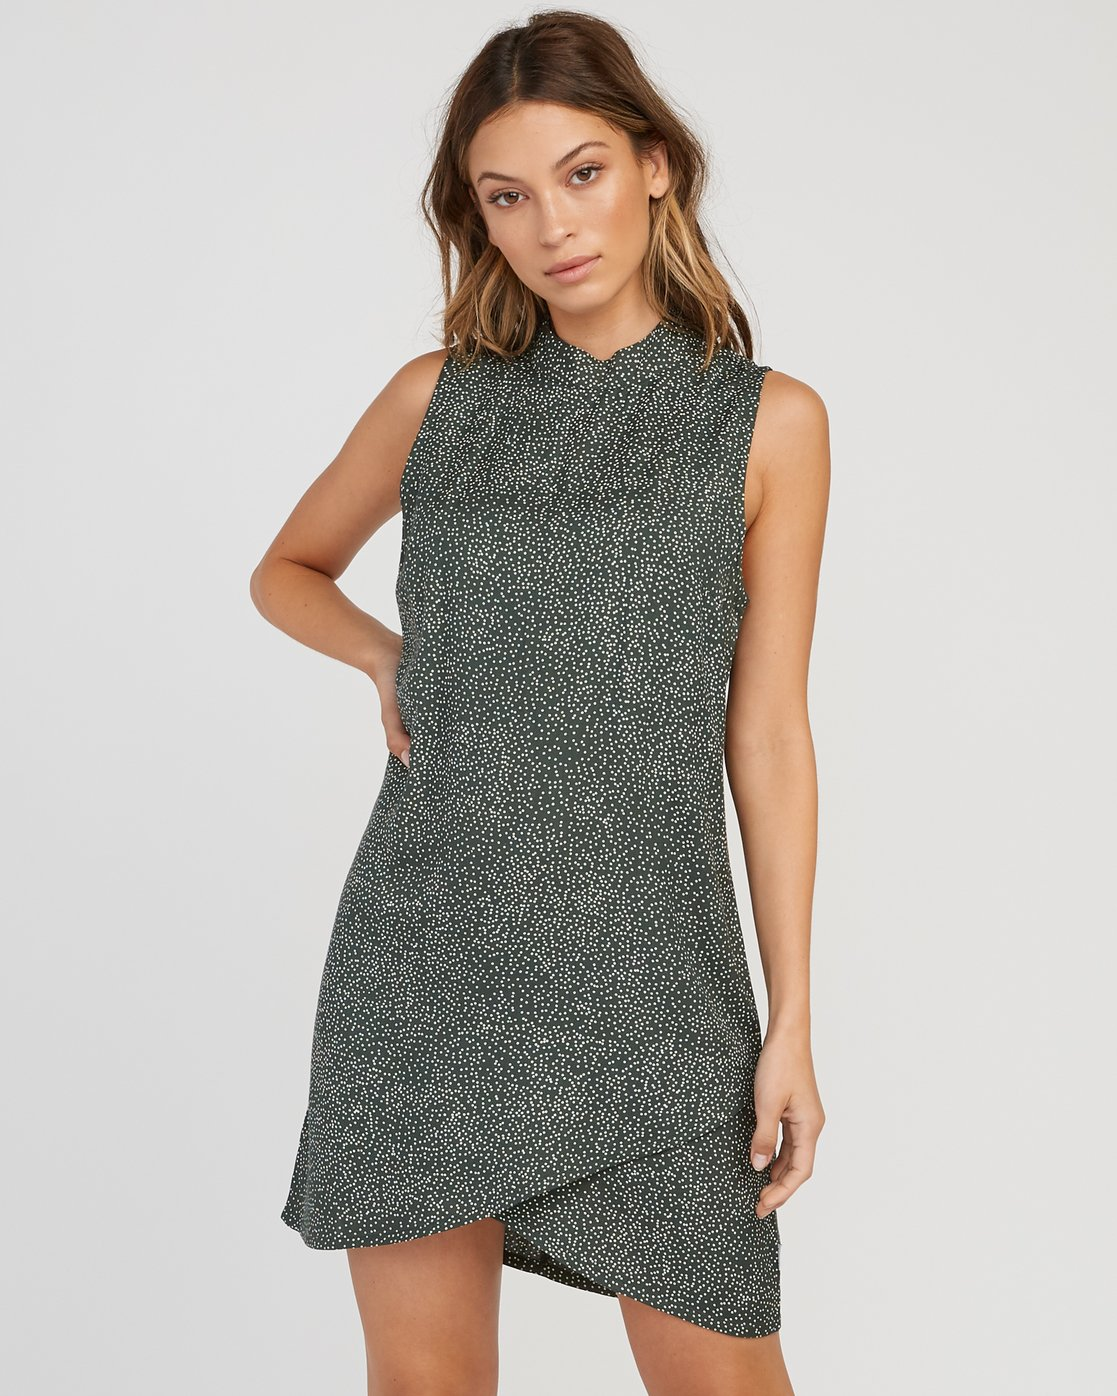 0 Safi Shift Dress Green WD17SRSA RVCA